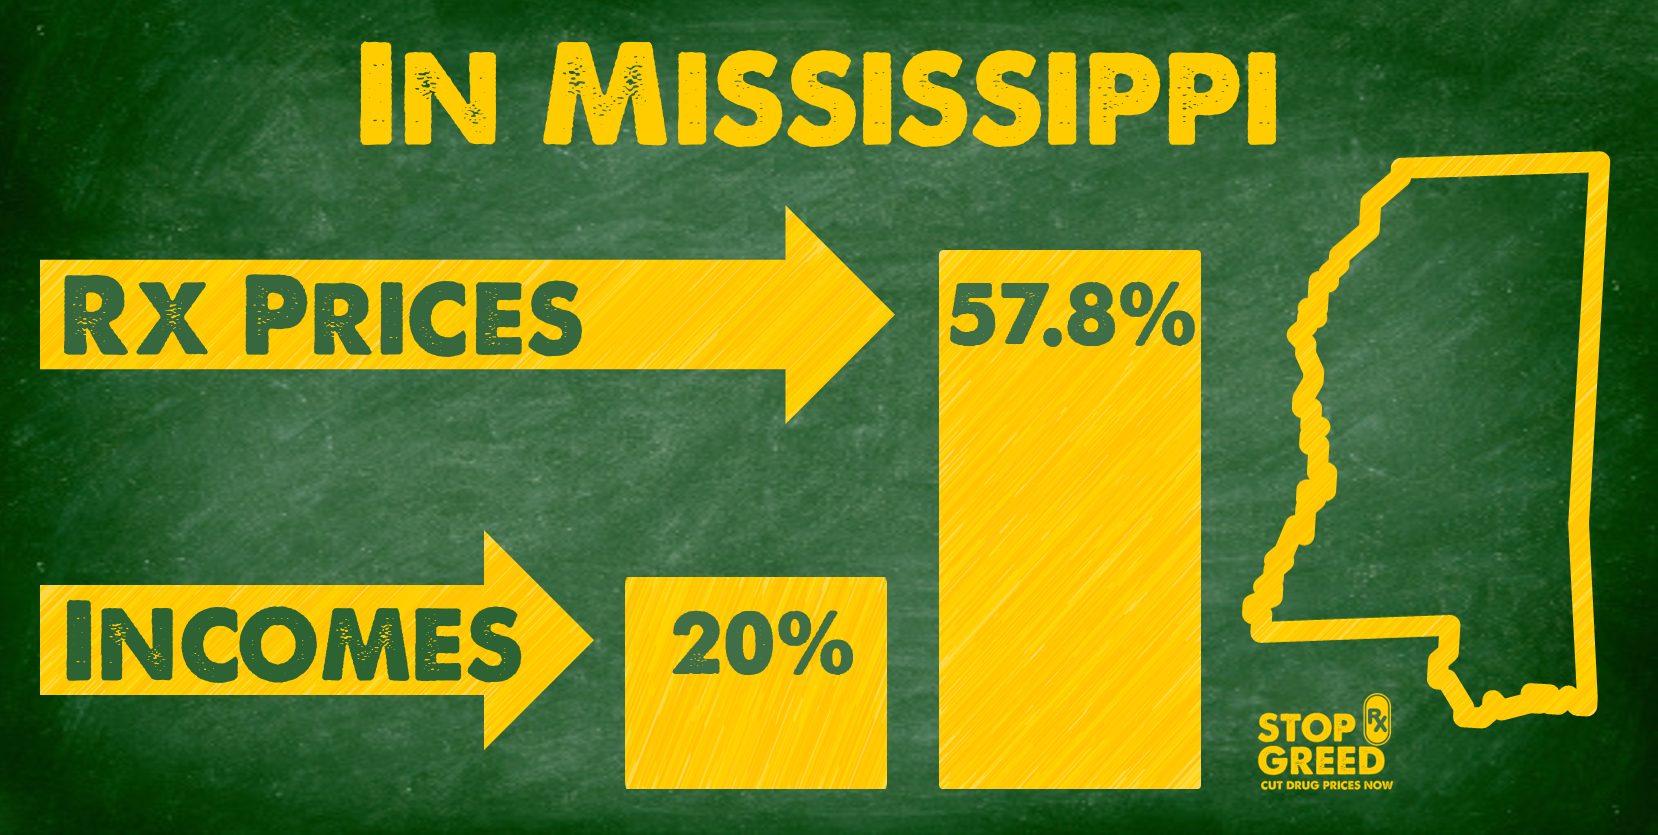 AARP Mississippi Shows Impact of Skyrocketing Drug Prices on Mississippians with New Data, Infographic